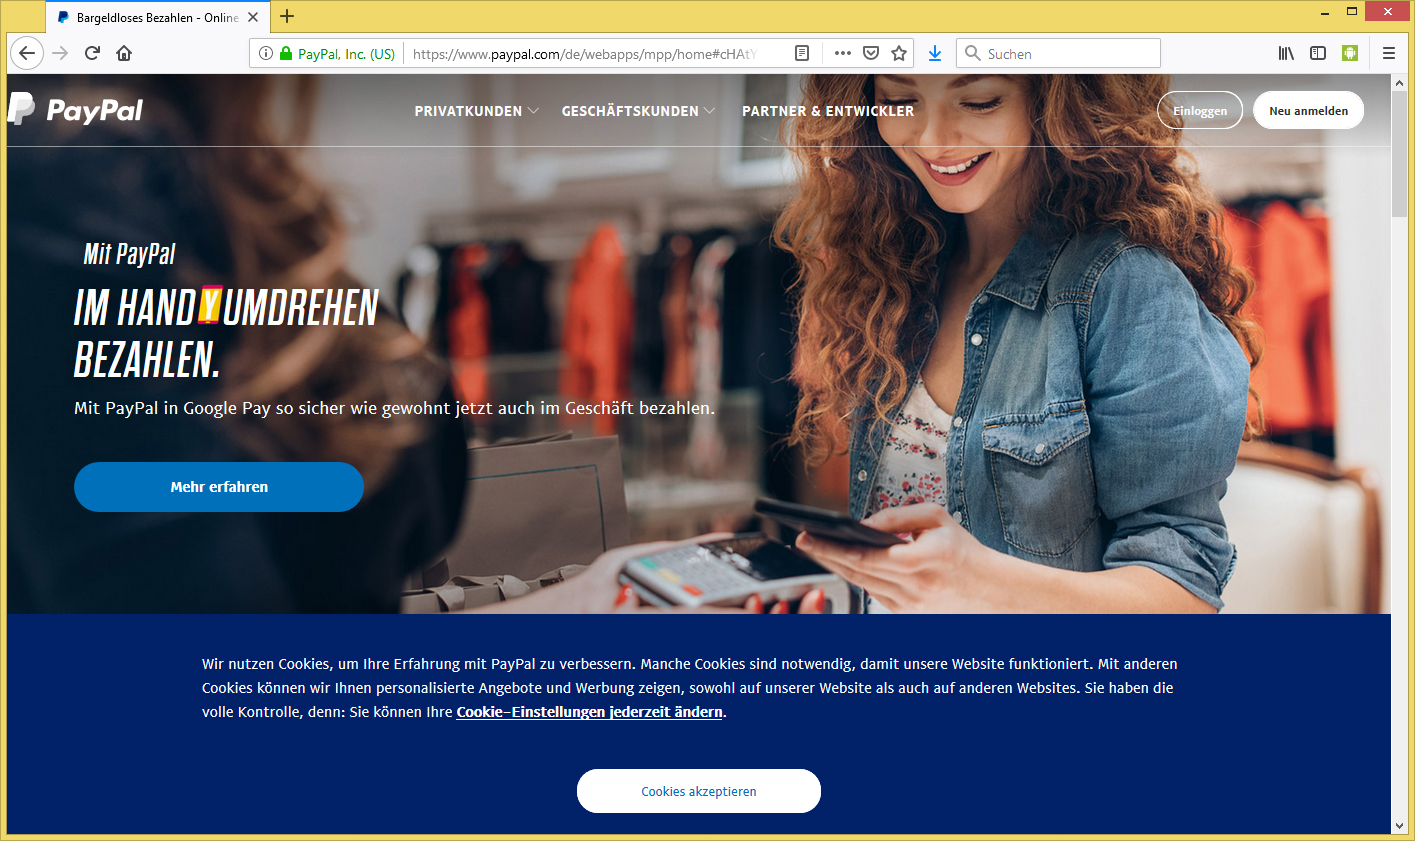 paypal personalausweis hochladen